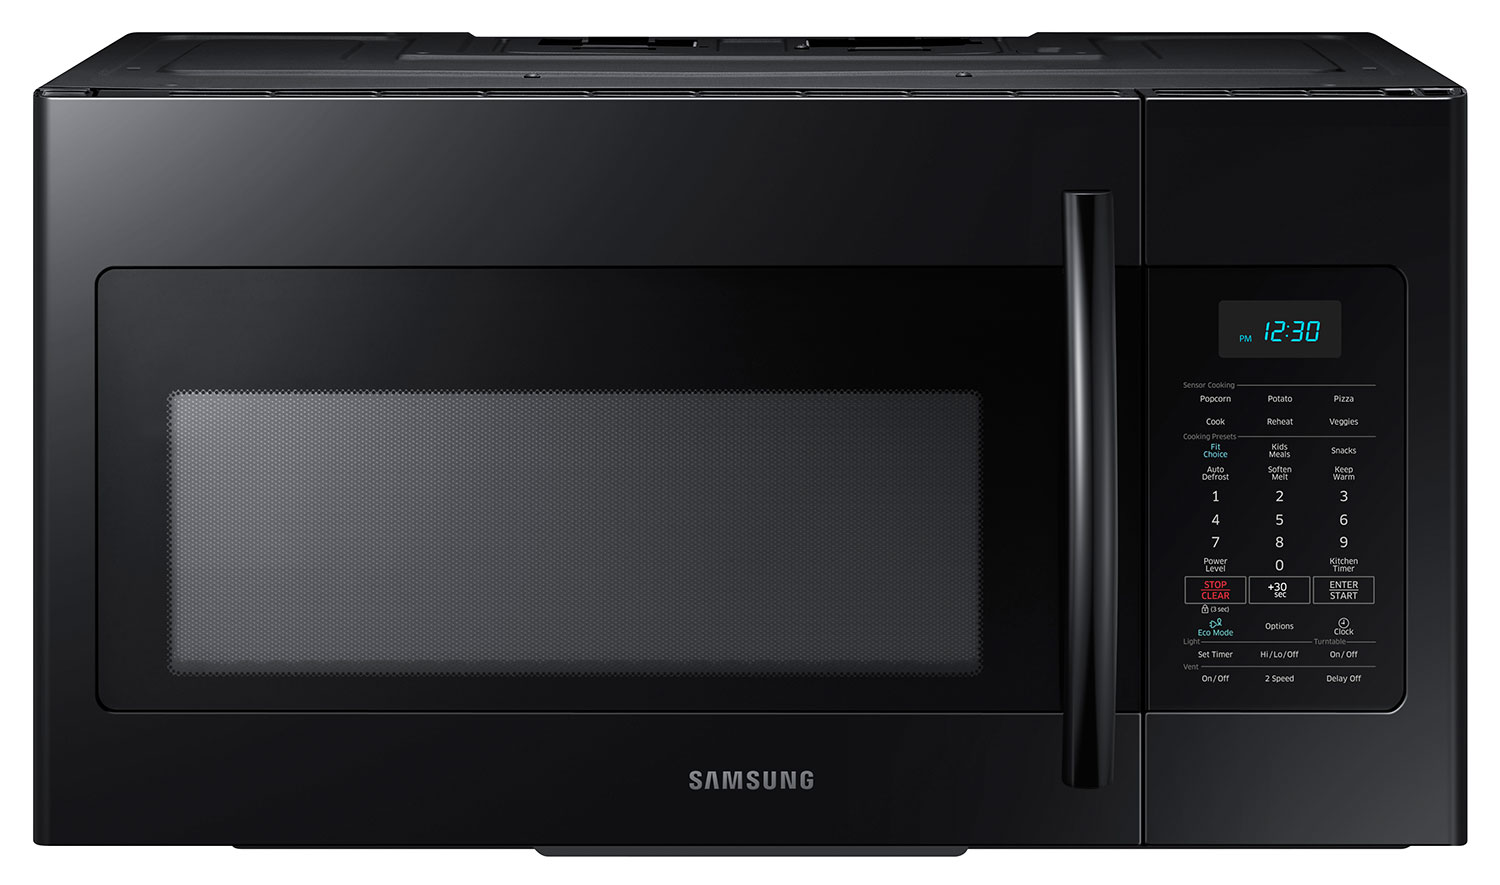 Cooking Products - Samsung Black Over-the-Range Microwave (1.7 Cu. Ft.) - ME17H703SHB